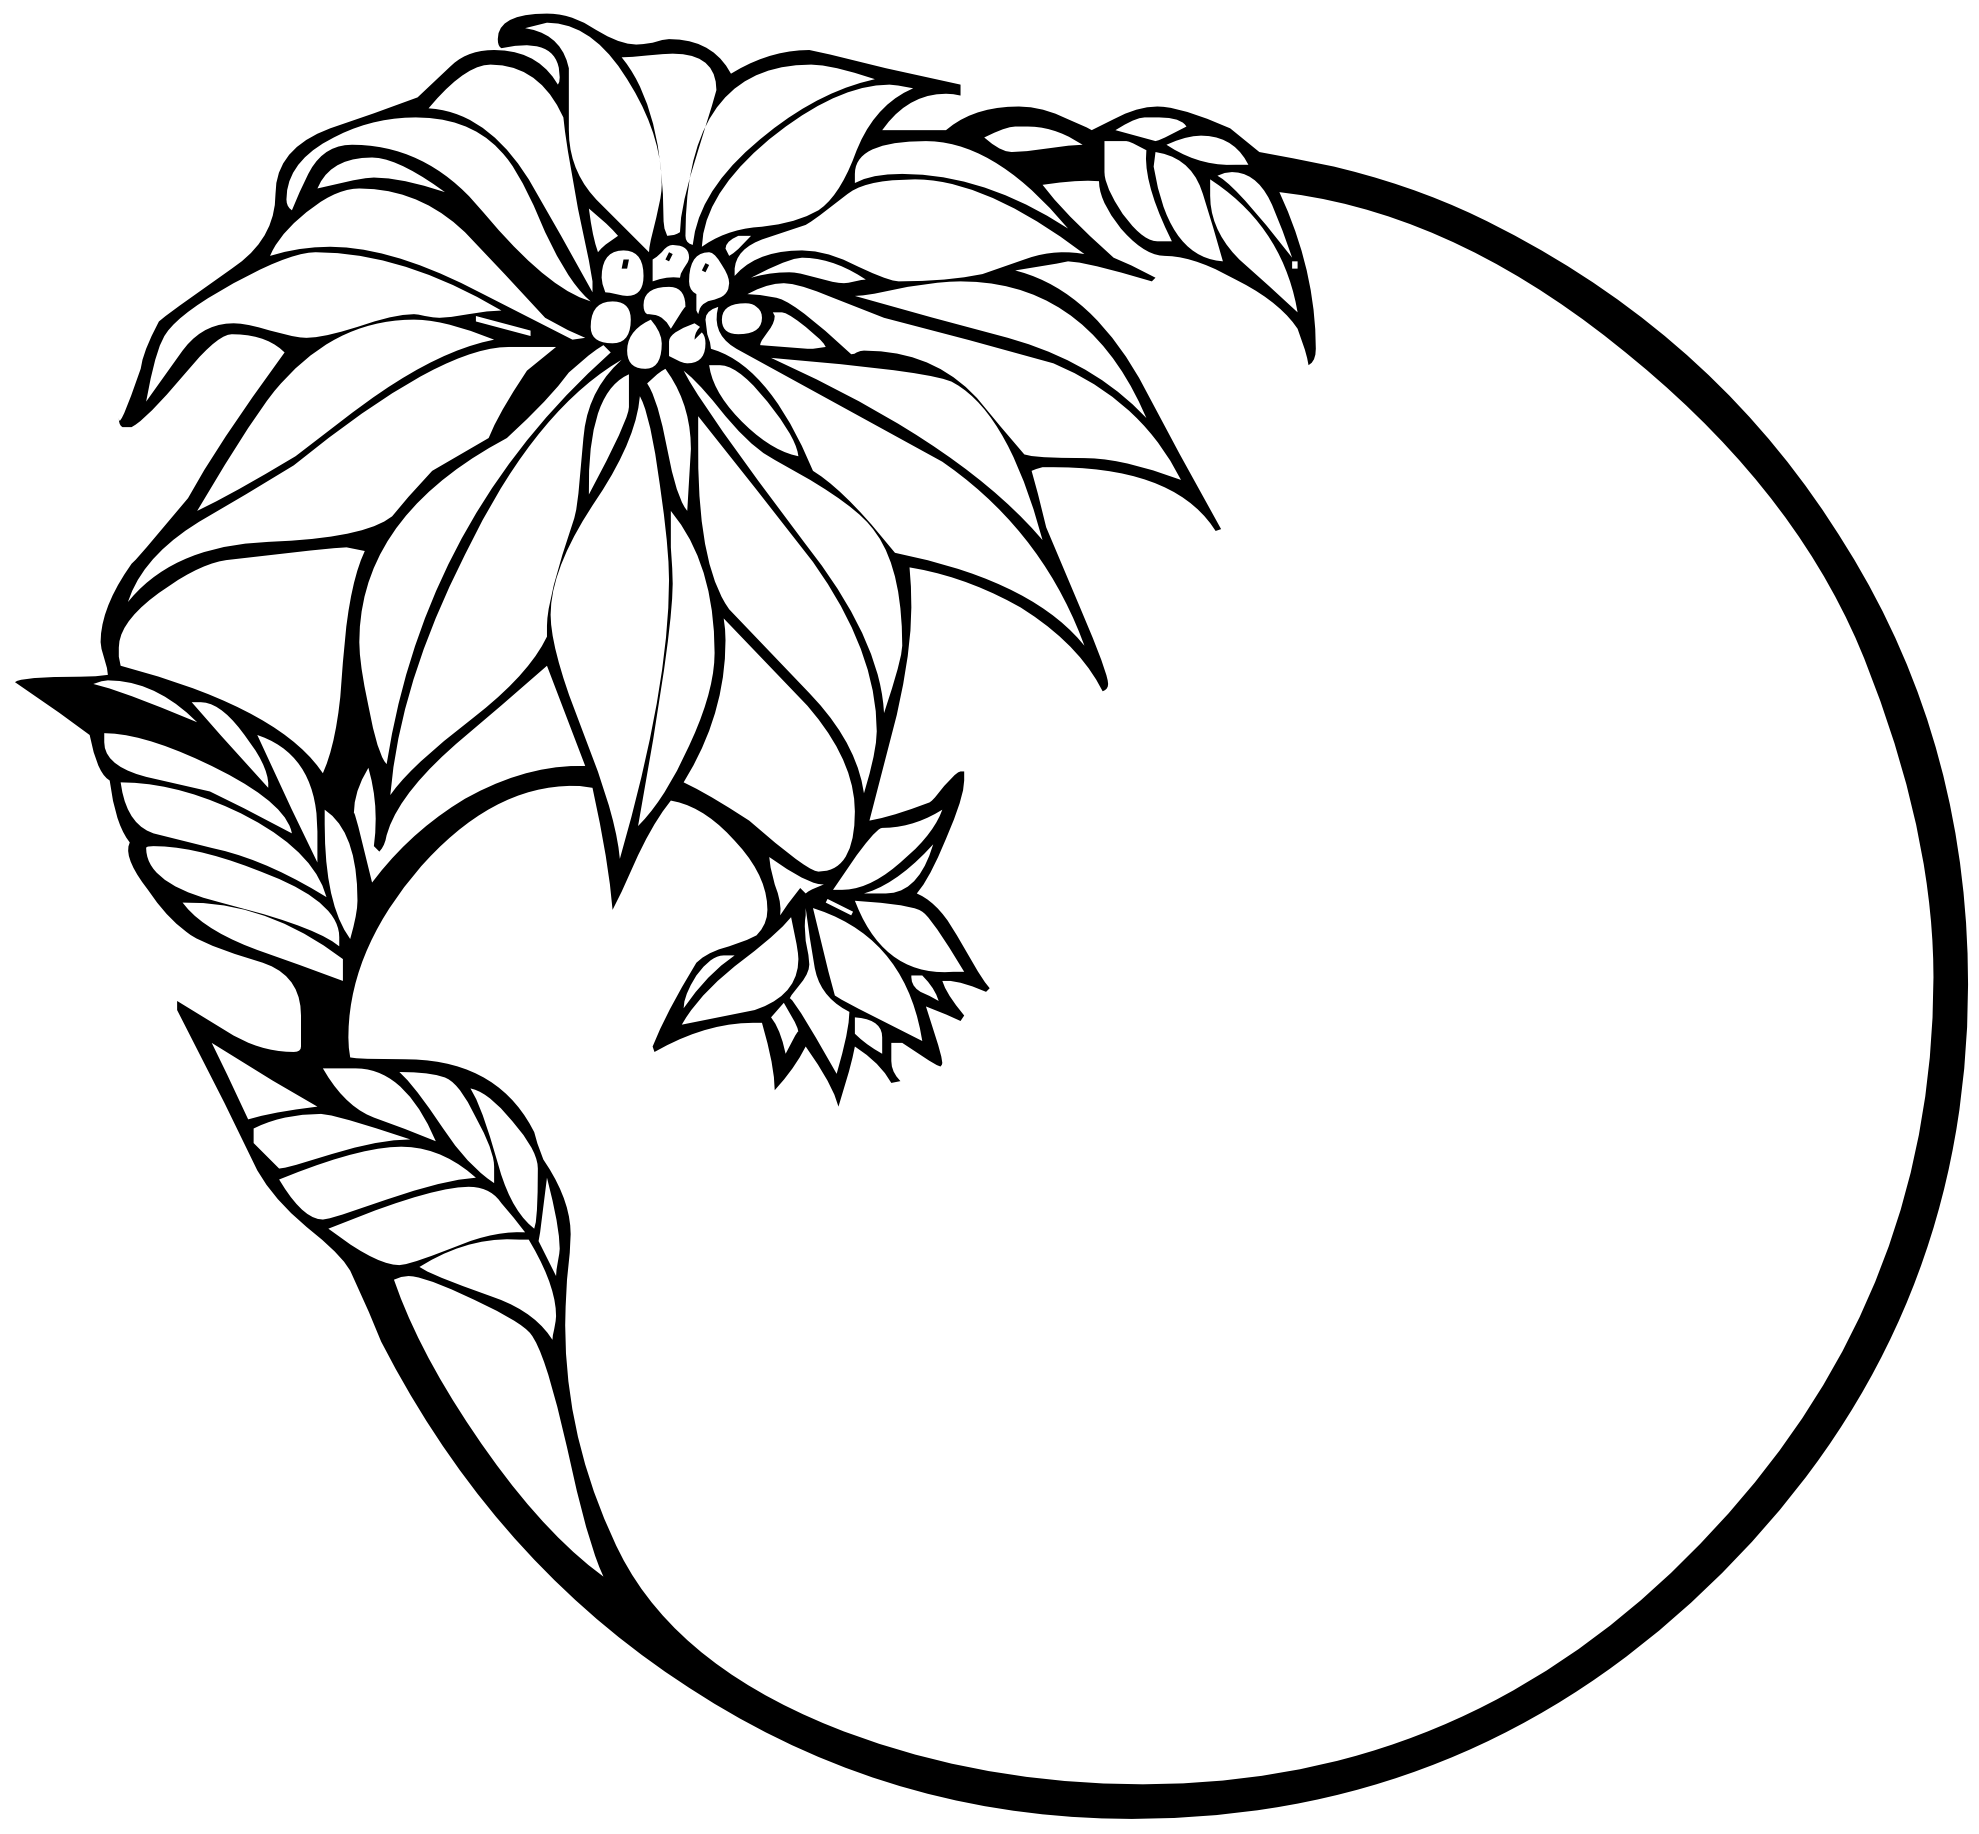 Free Black And White Flower Designs Download Free Clip Art Free Clip Art On Clipart Library